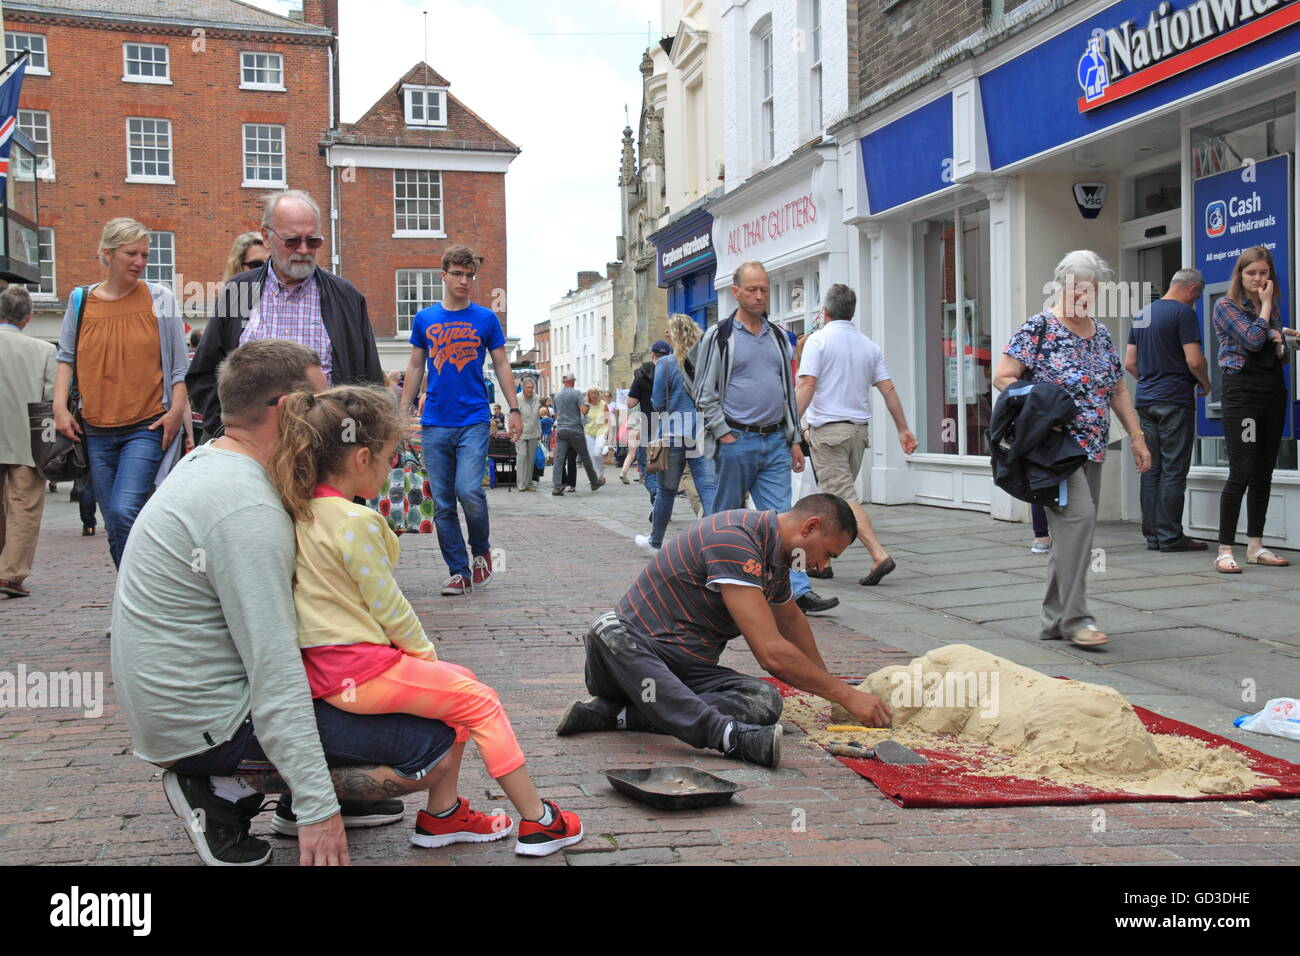 Sand sculptor, North Street, Chichester, West Sussex, England, Great Britain, United Kingdom, UK, Europe - Stock Image